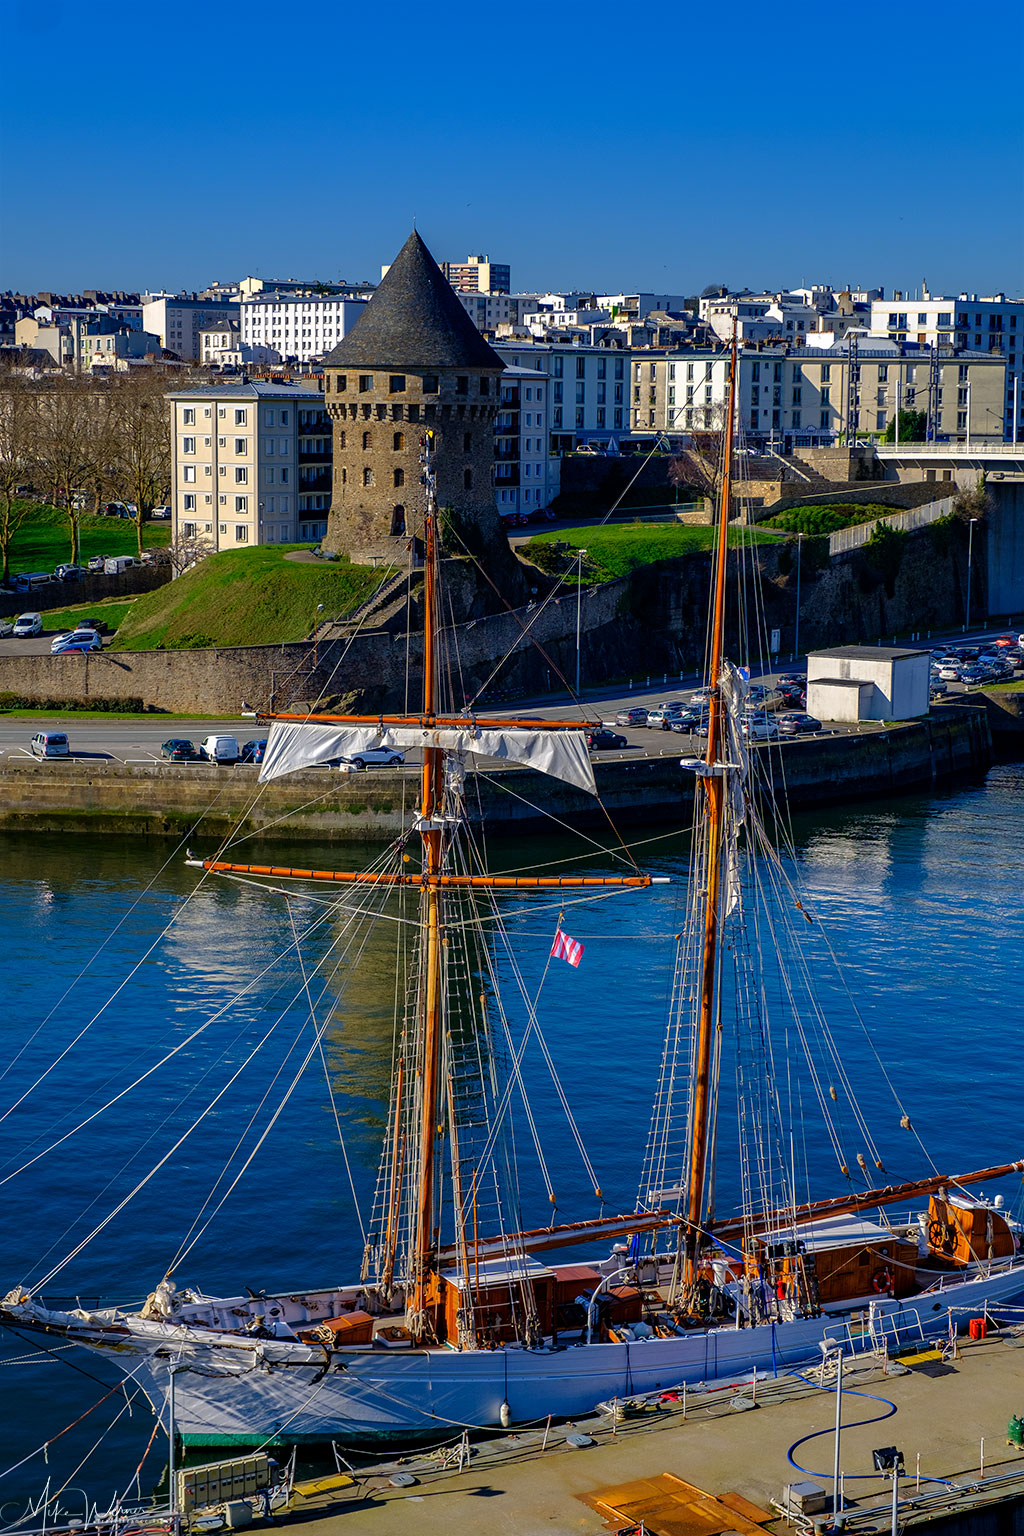 Tour Tanguy and a tall ship as seen from the Brest Castle/Fortress in Brittany